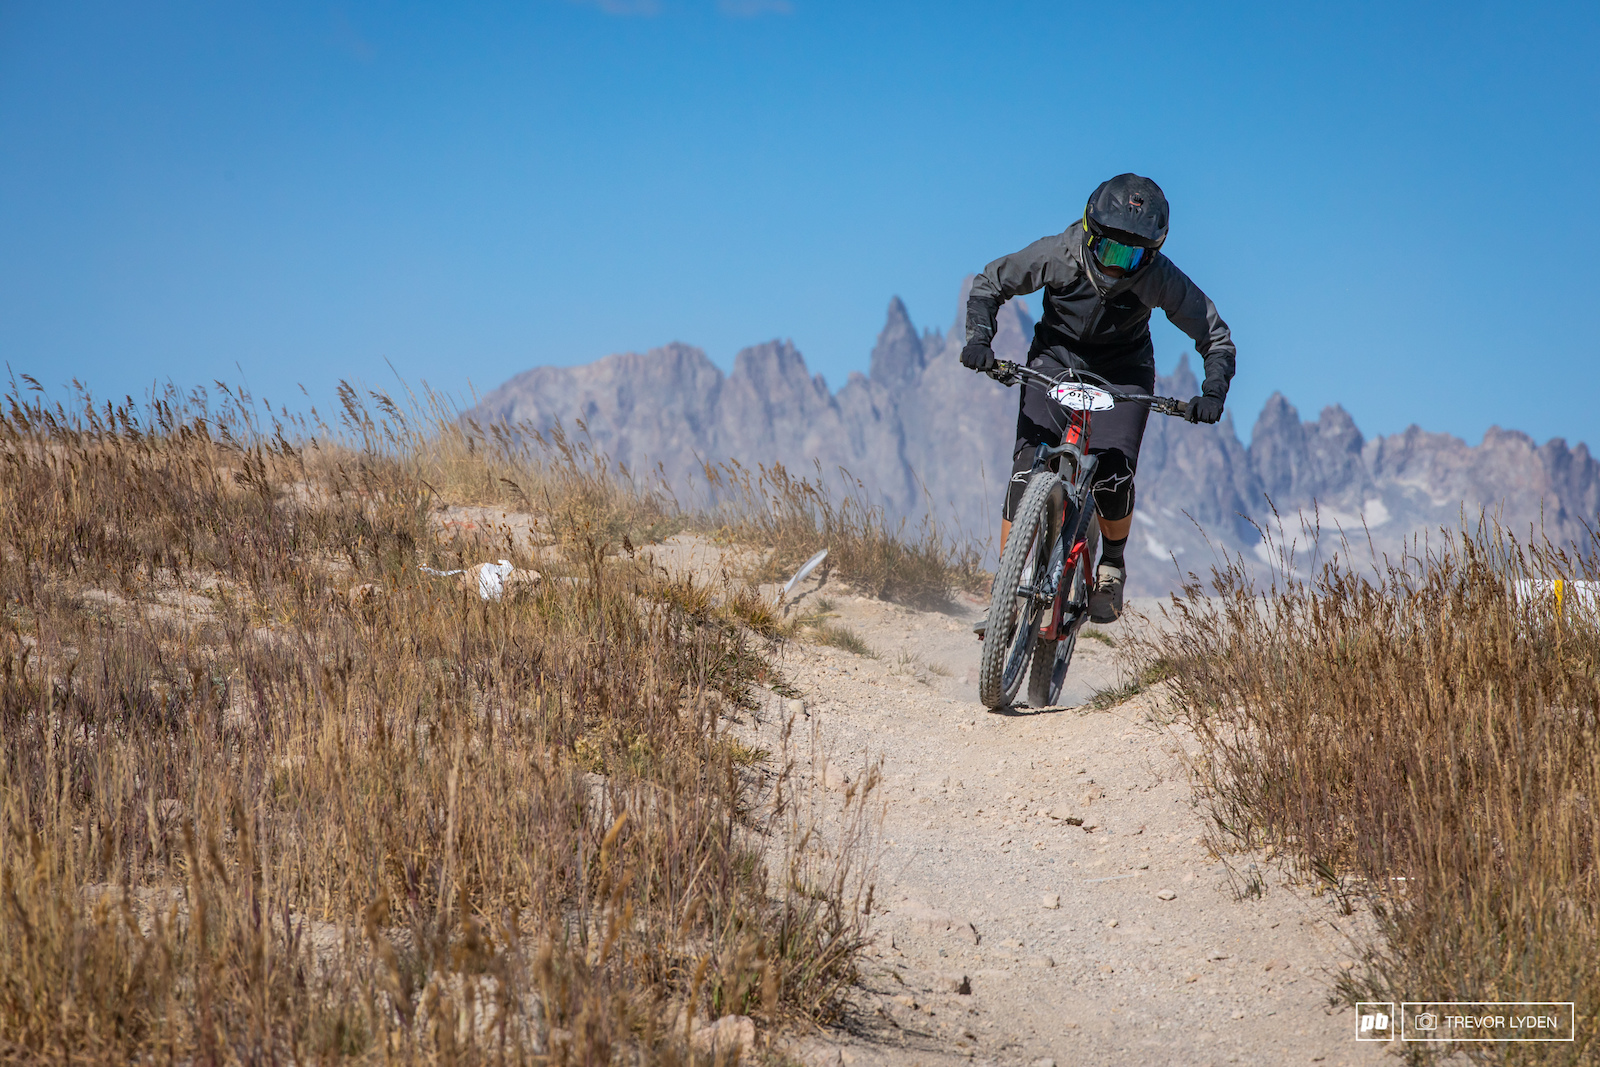 Stage 1 started out on the most mellow trails of the day. A good warm up for the race to come